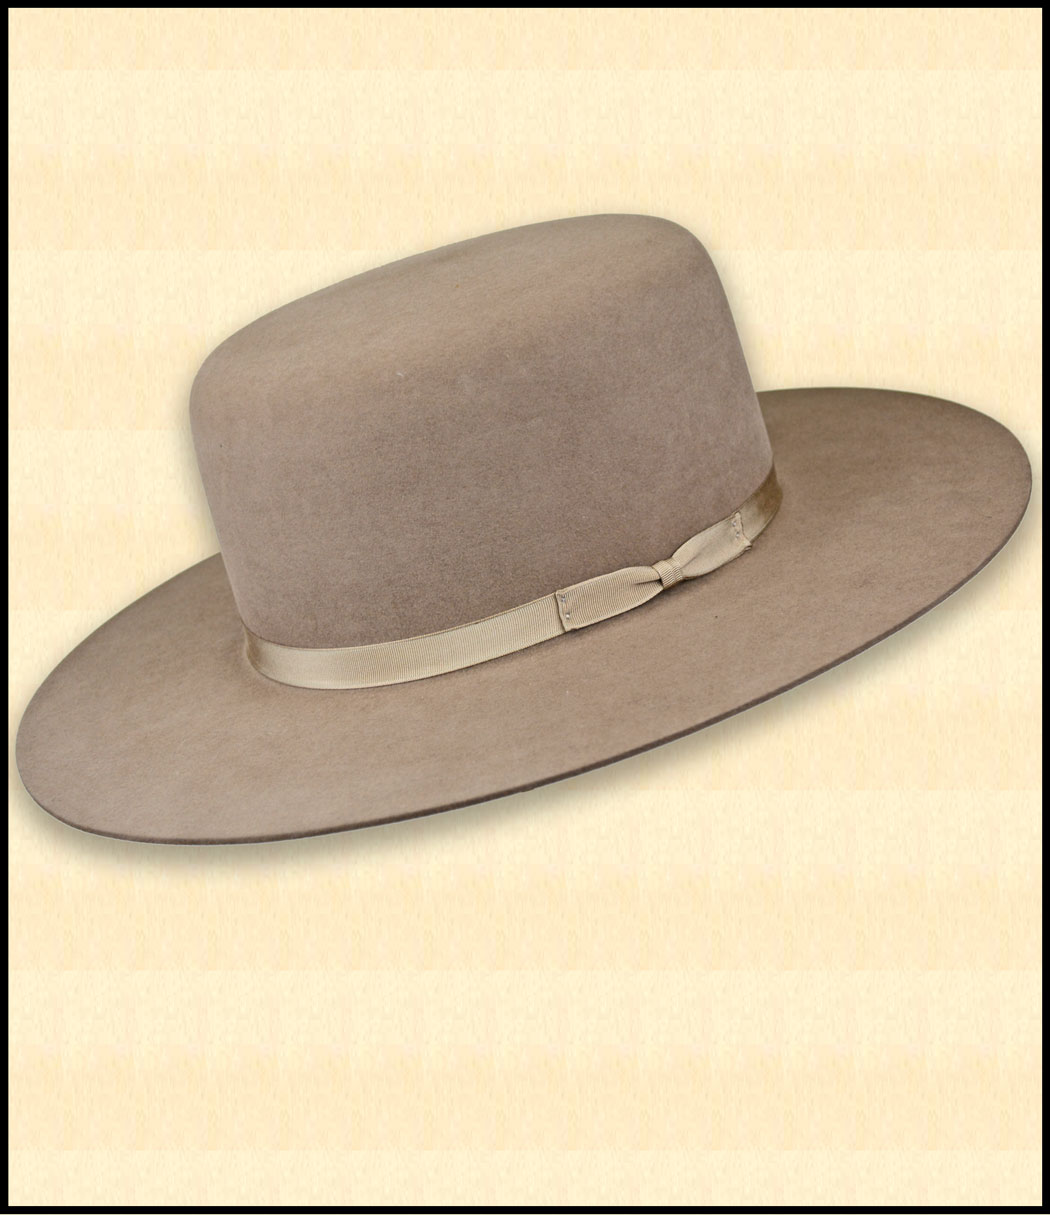 092d1e1290328 The Boss of the Plains Hat is the most authentic Old West cowboy hat we  offer. Available in Pecan 10X Felt - Click to Enlarge Image